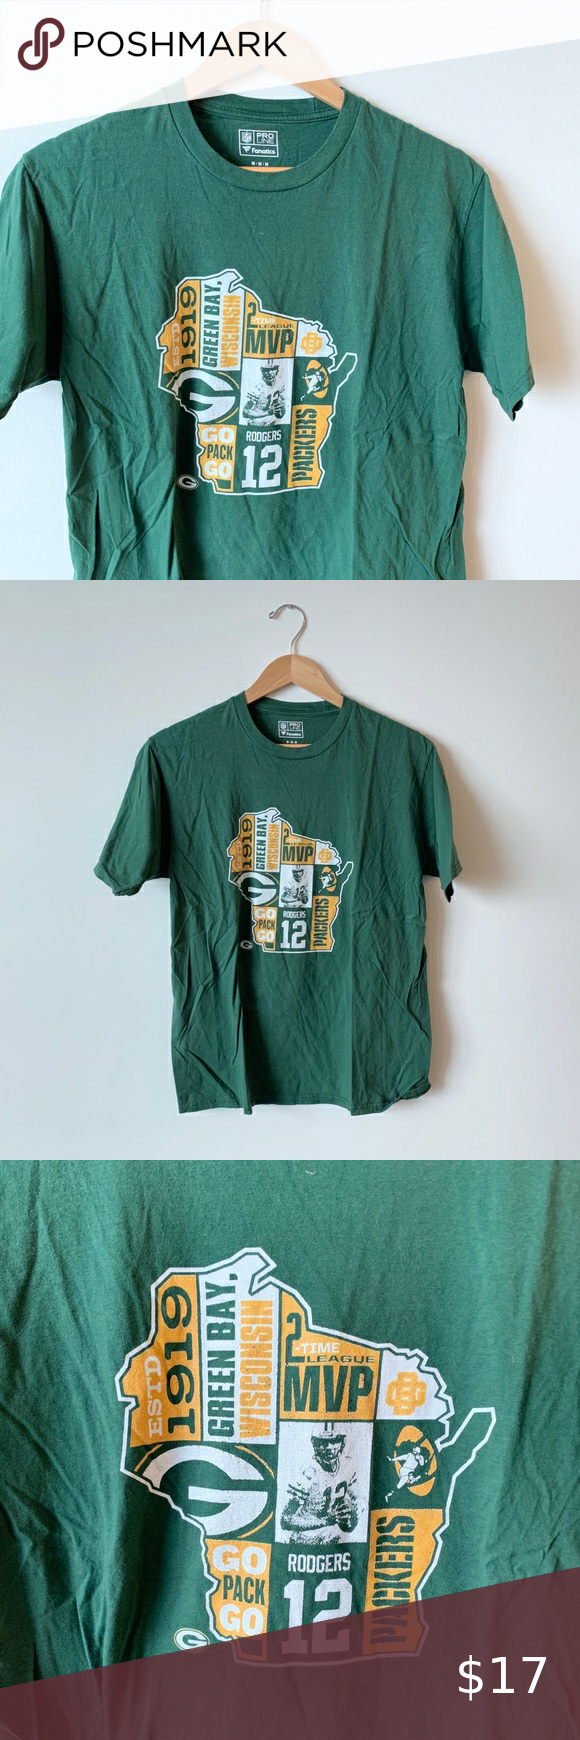 Nfl Packers Aaron Rodgers T Shirt Green Gold In 2020 Aaron Rodgers Nfl Packers Nfl Green Bay